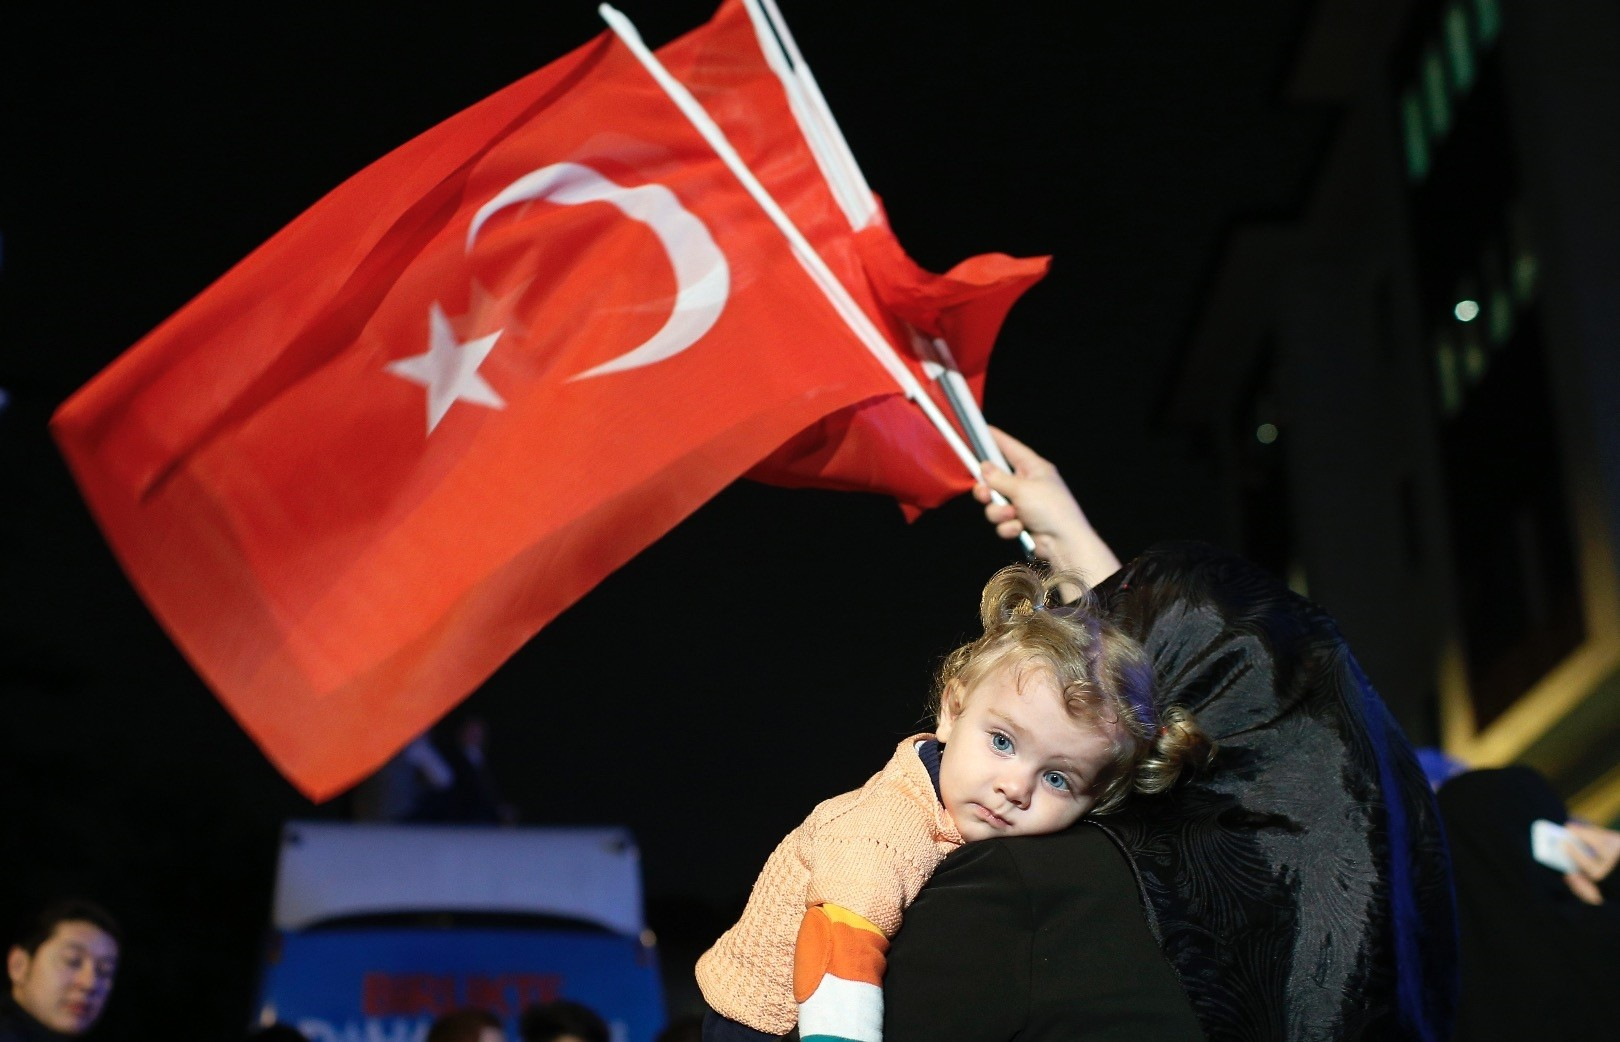 A supporter of Turkeyu2019s ruling Justice and Development Party holds a baby as she waves Turkish flags, u0130stanbul, Turkey, June 7, 2015.